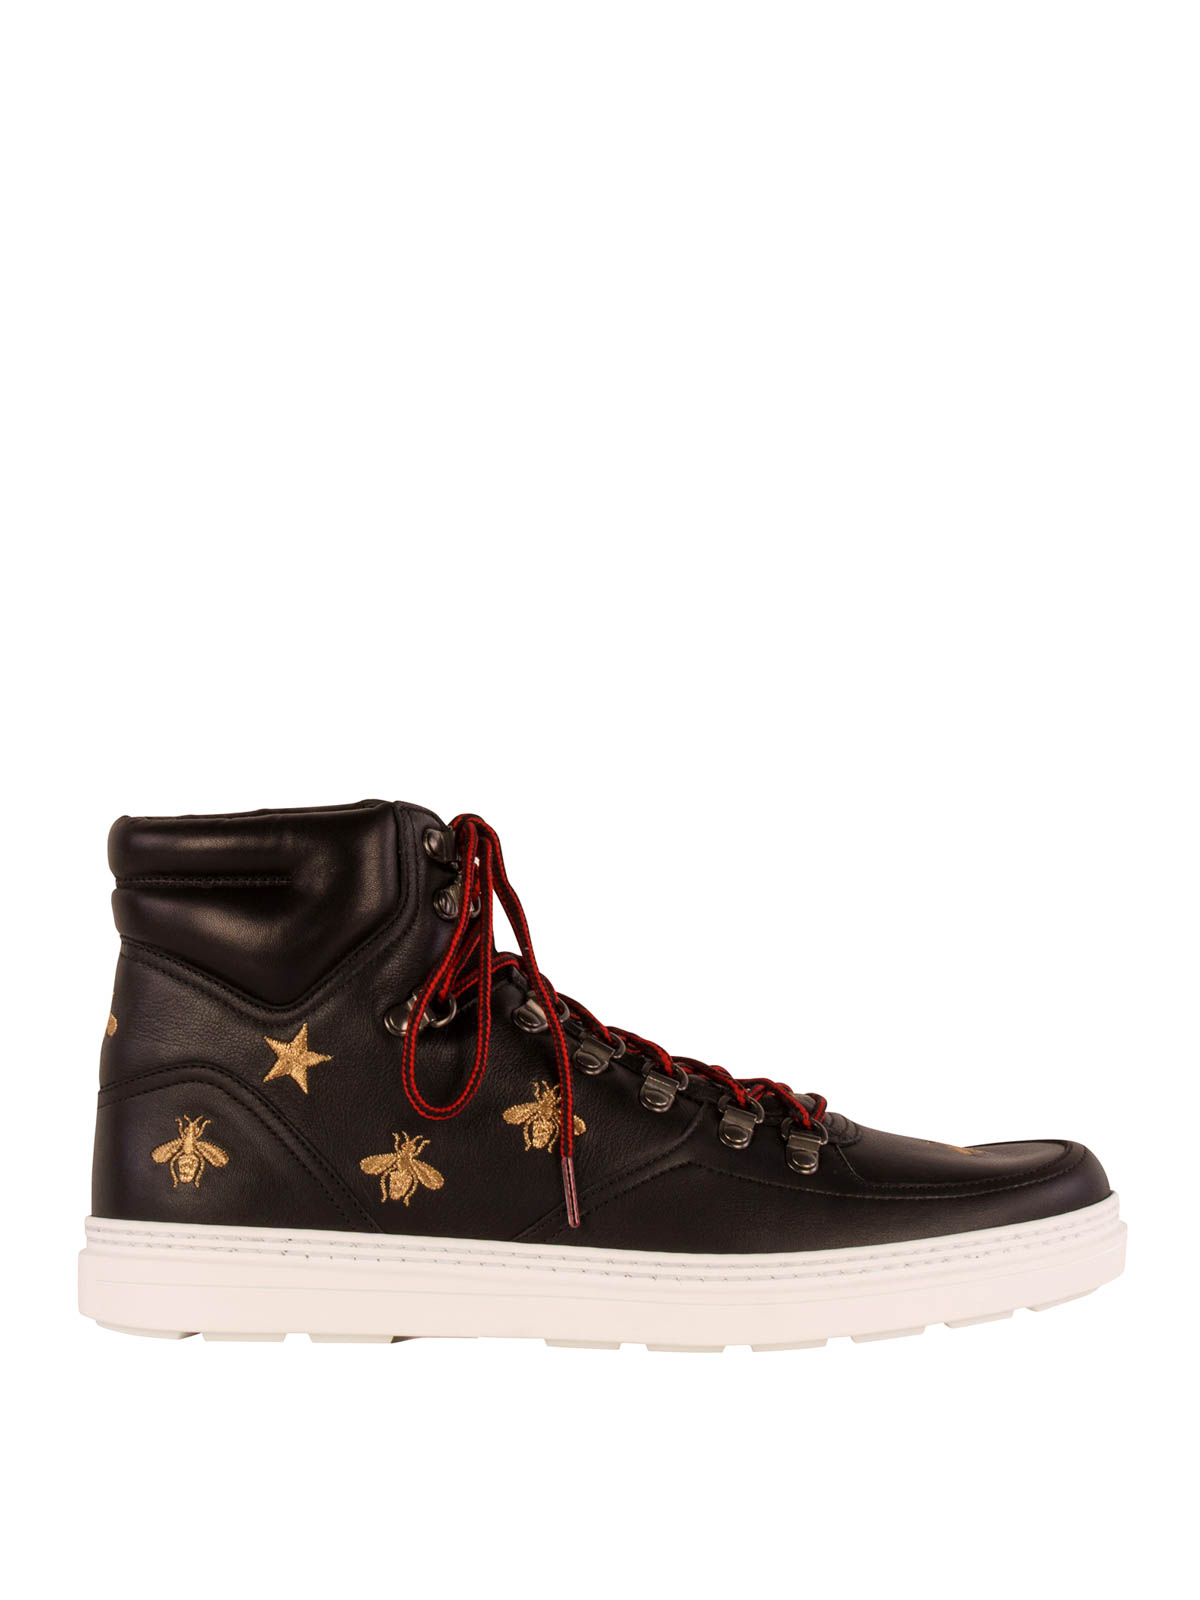 leather high top sneakers by gucci trainers ikrix. Black Bedroom Furniture Sets. Home Design Ideas